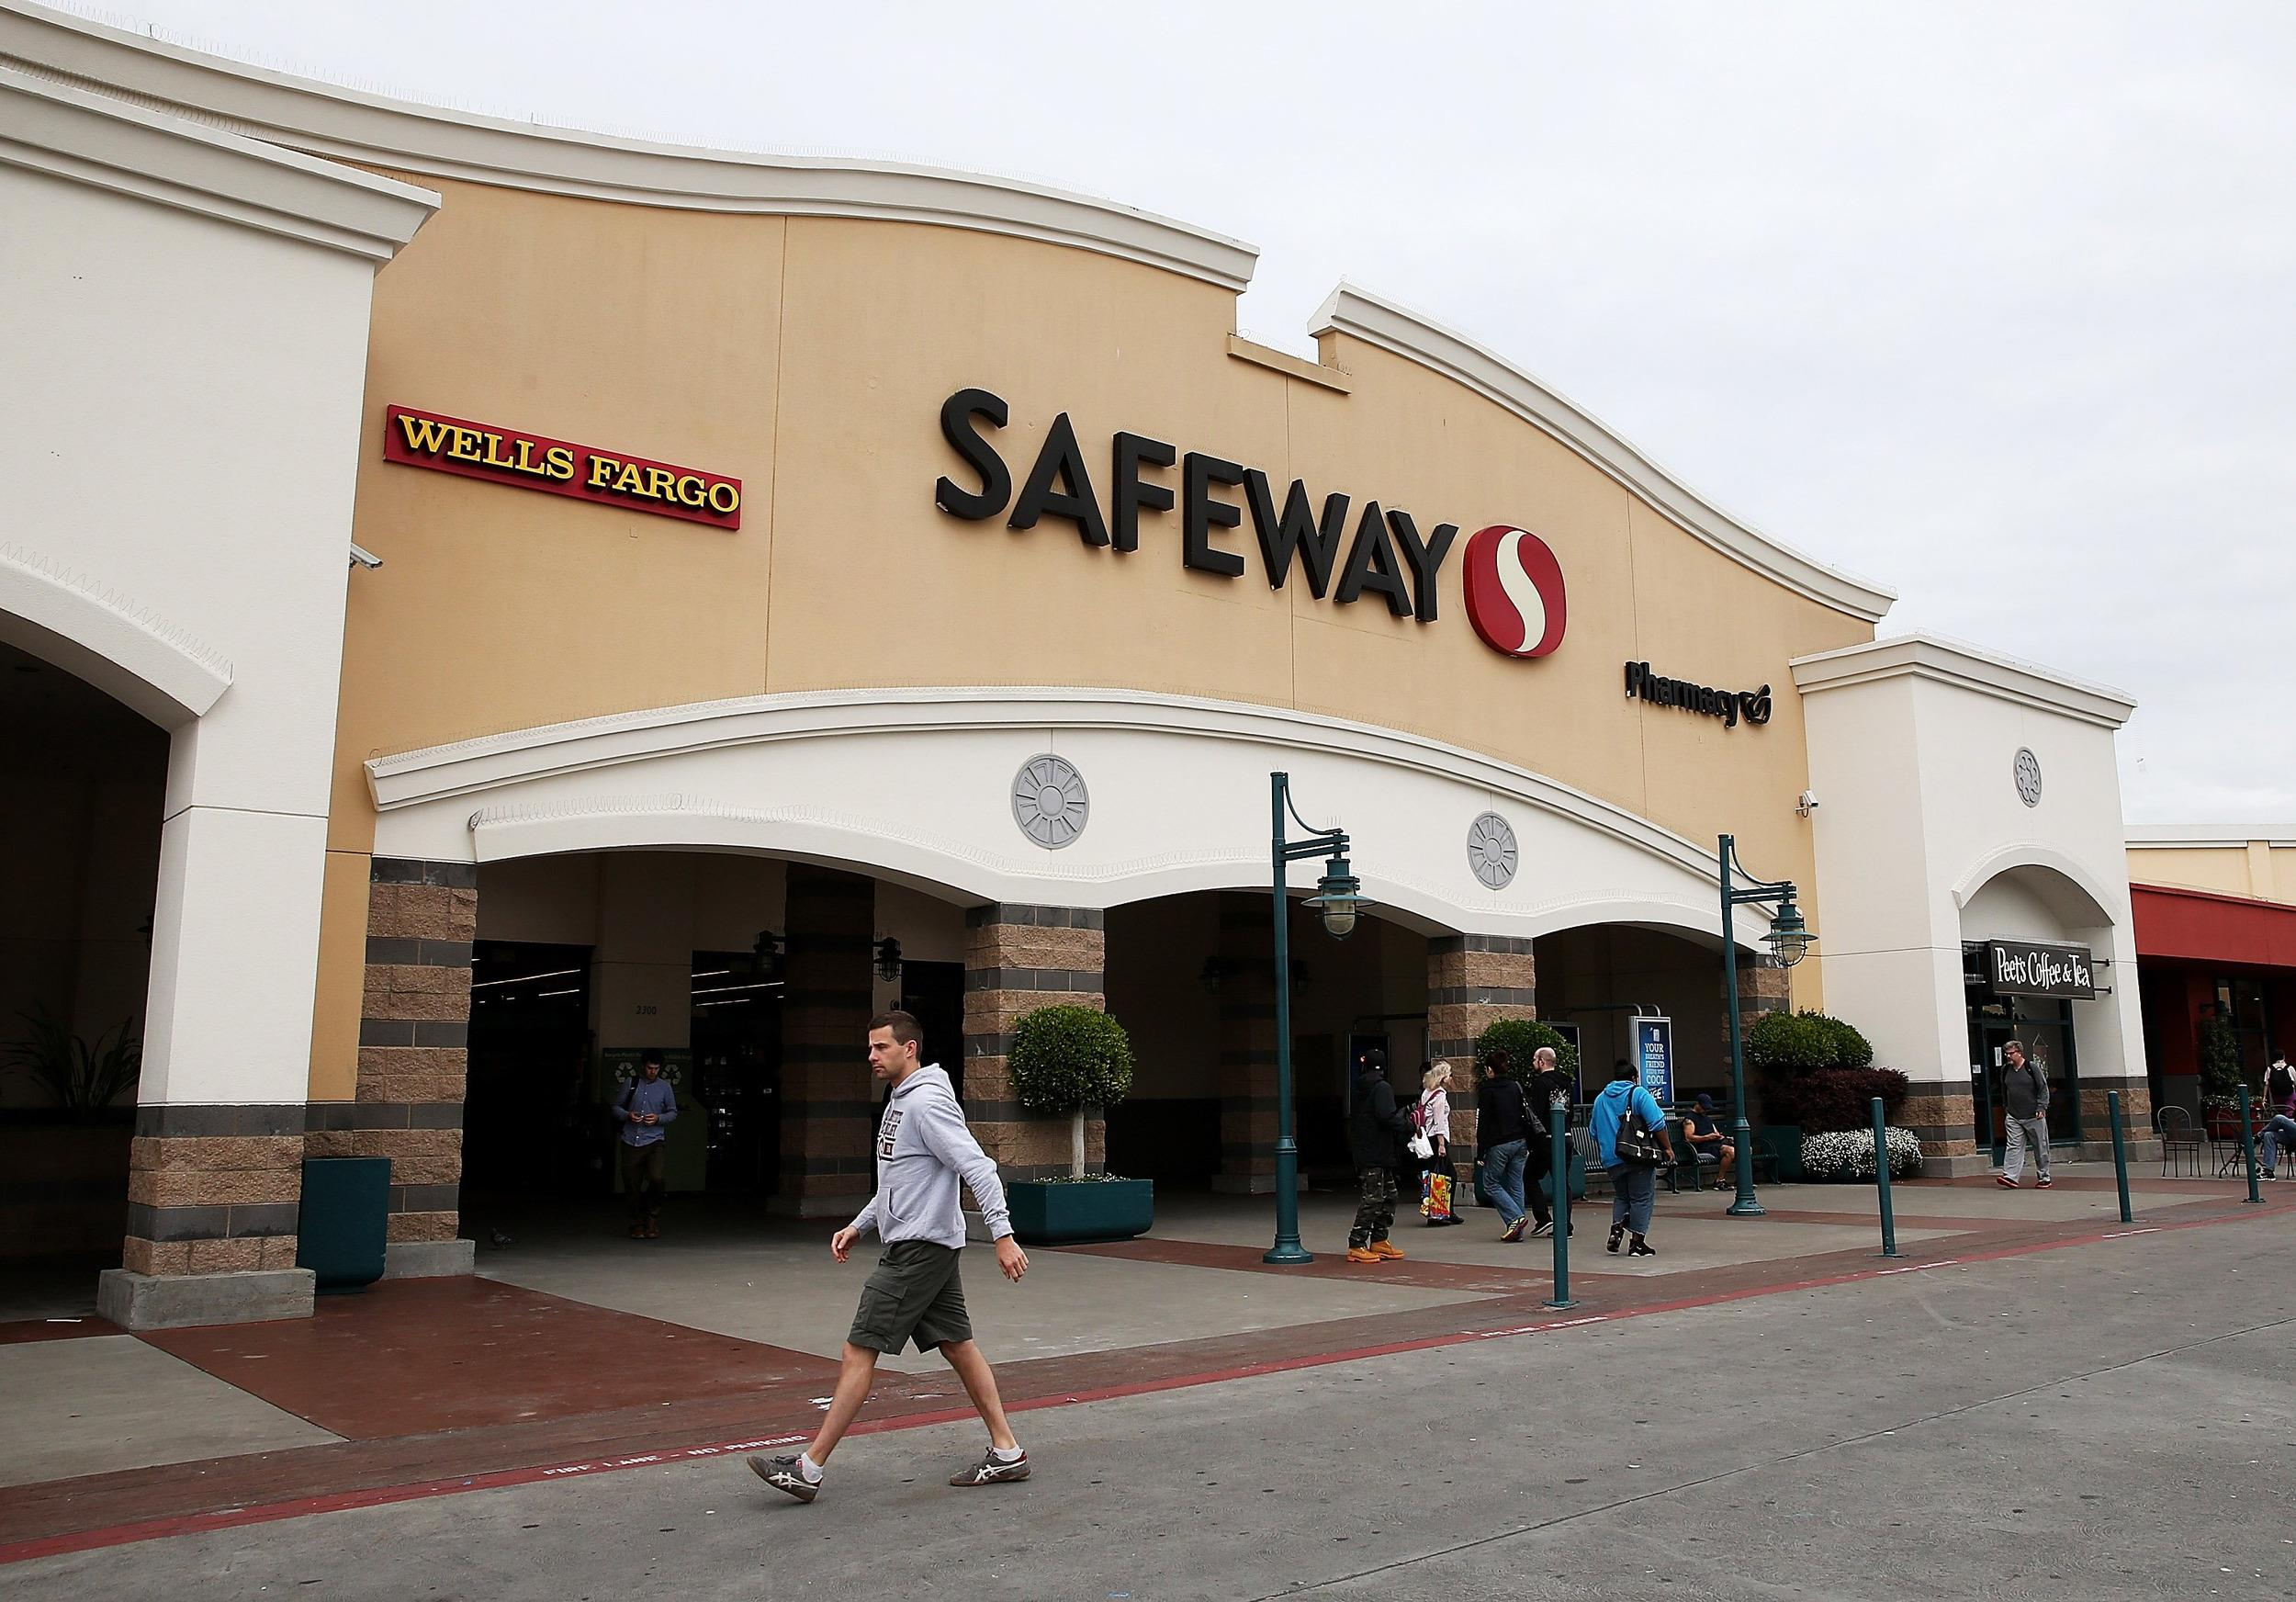 Private equity firm Cerberus agreed to buy Safeway.